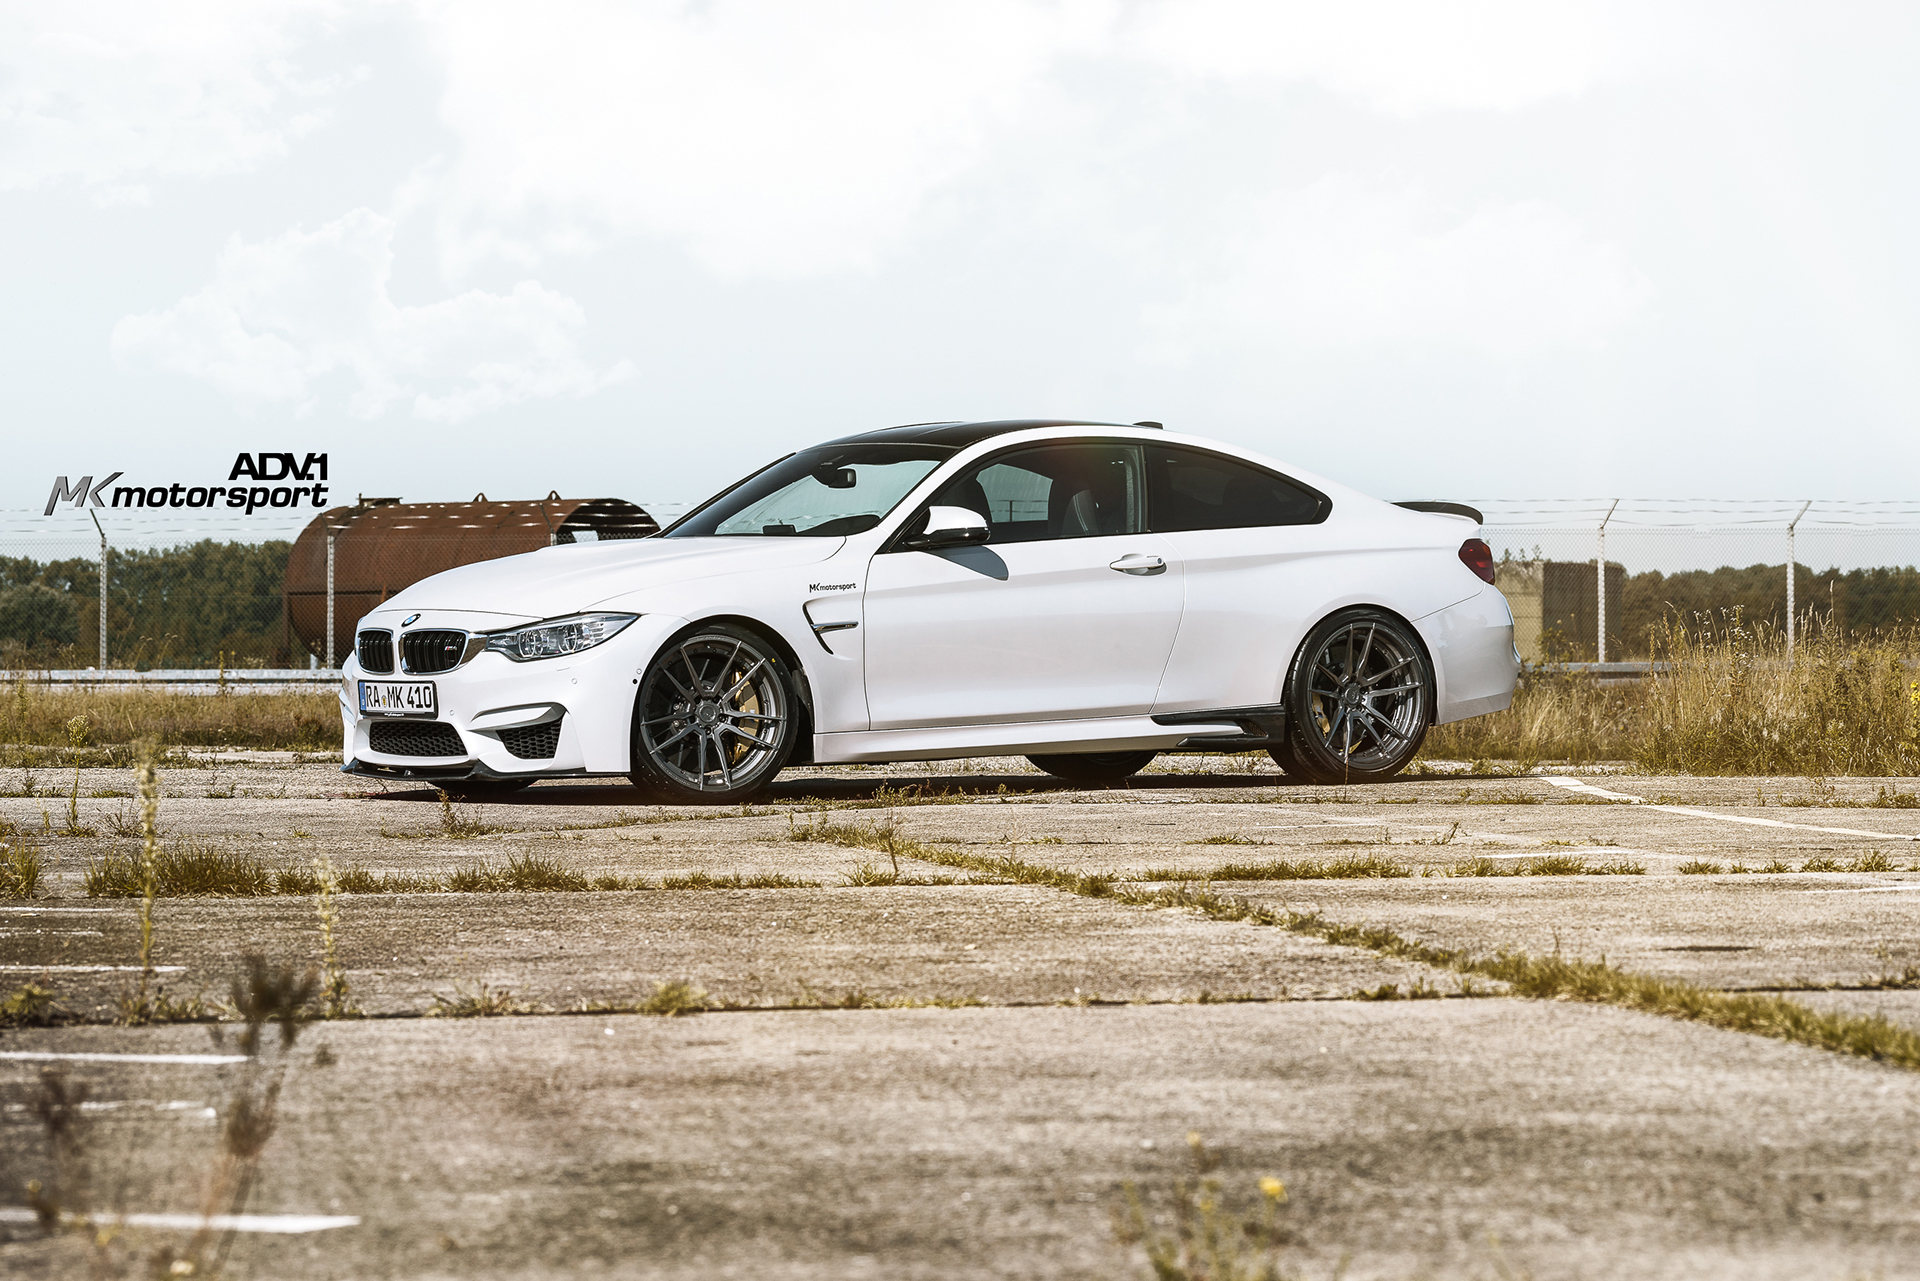 bmw-m4-on-adv-1-wheels-5